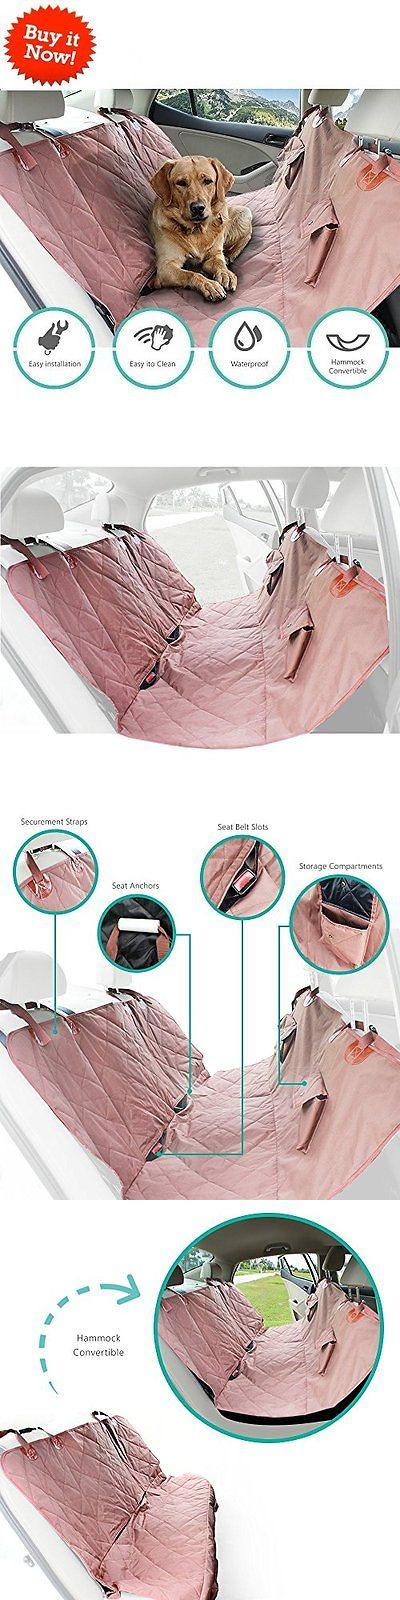 Car Seat Covers 117426: Wow Waterproof Dog Car Back Seat Cover Nonslip Pet Dog Car Hammock Suv Pink Us -> BUY IT NOW ONLY: $35.98 on eBay!